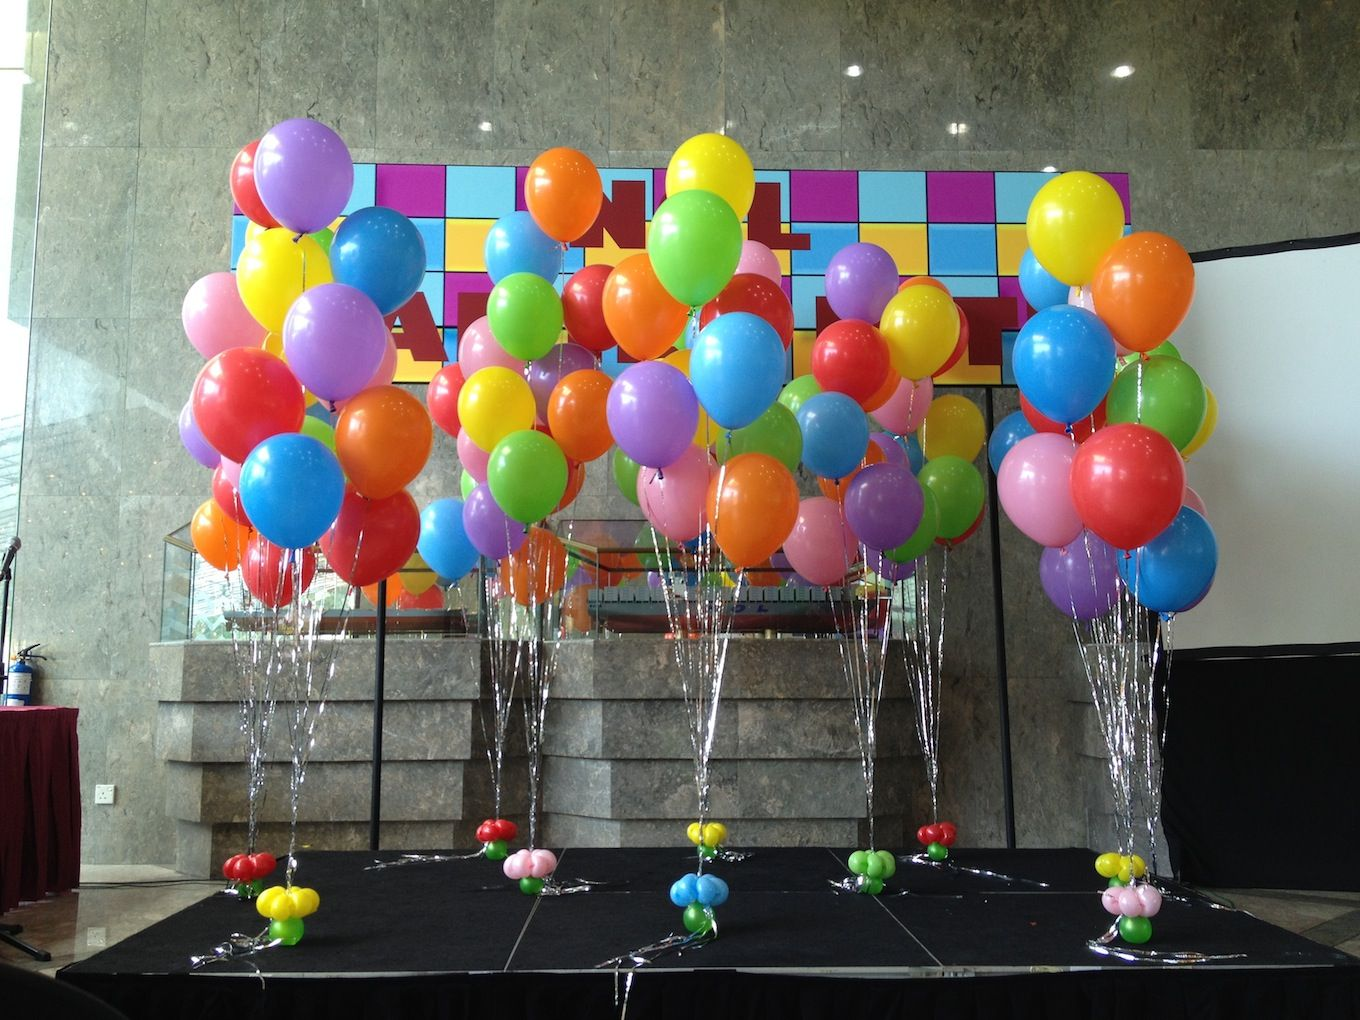 The Stage Decoration Includes A Customised Balloon Arch With Letters Star Columns And Few Bunches Of Helium Bouquet